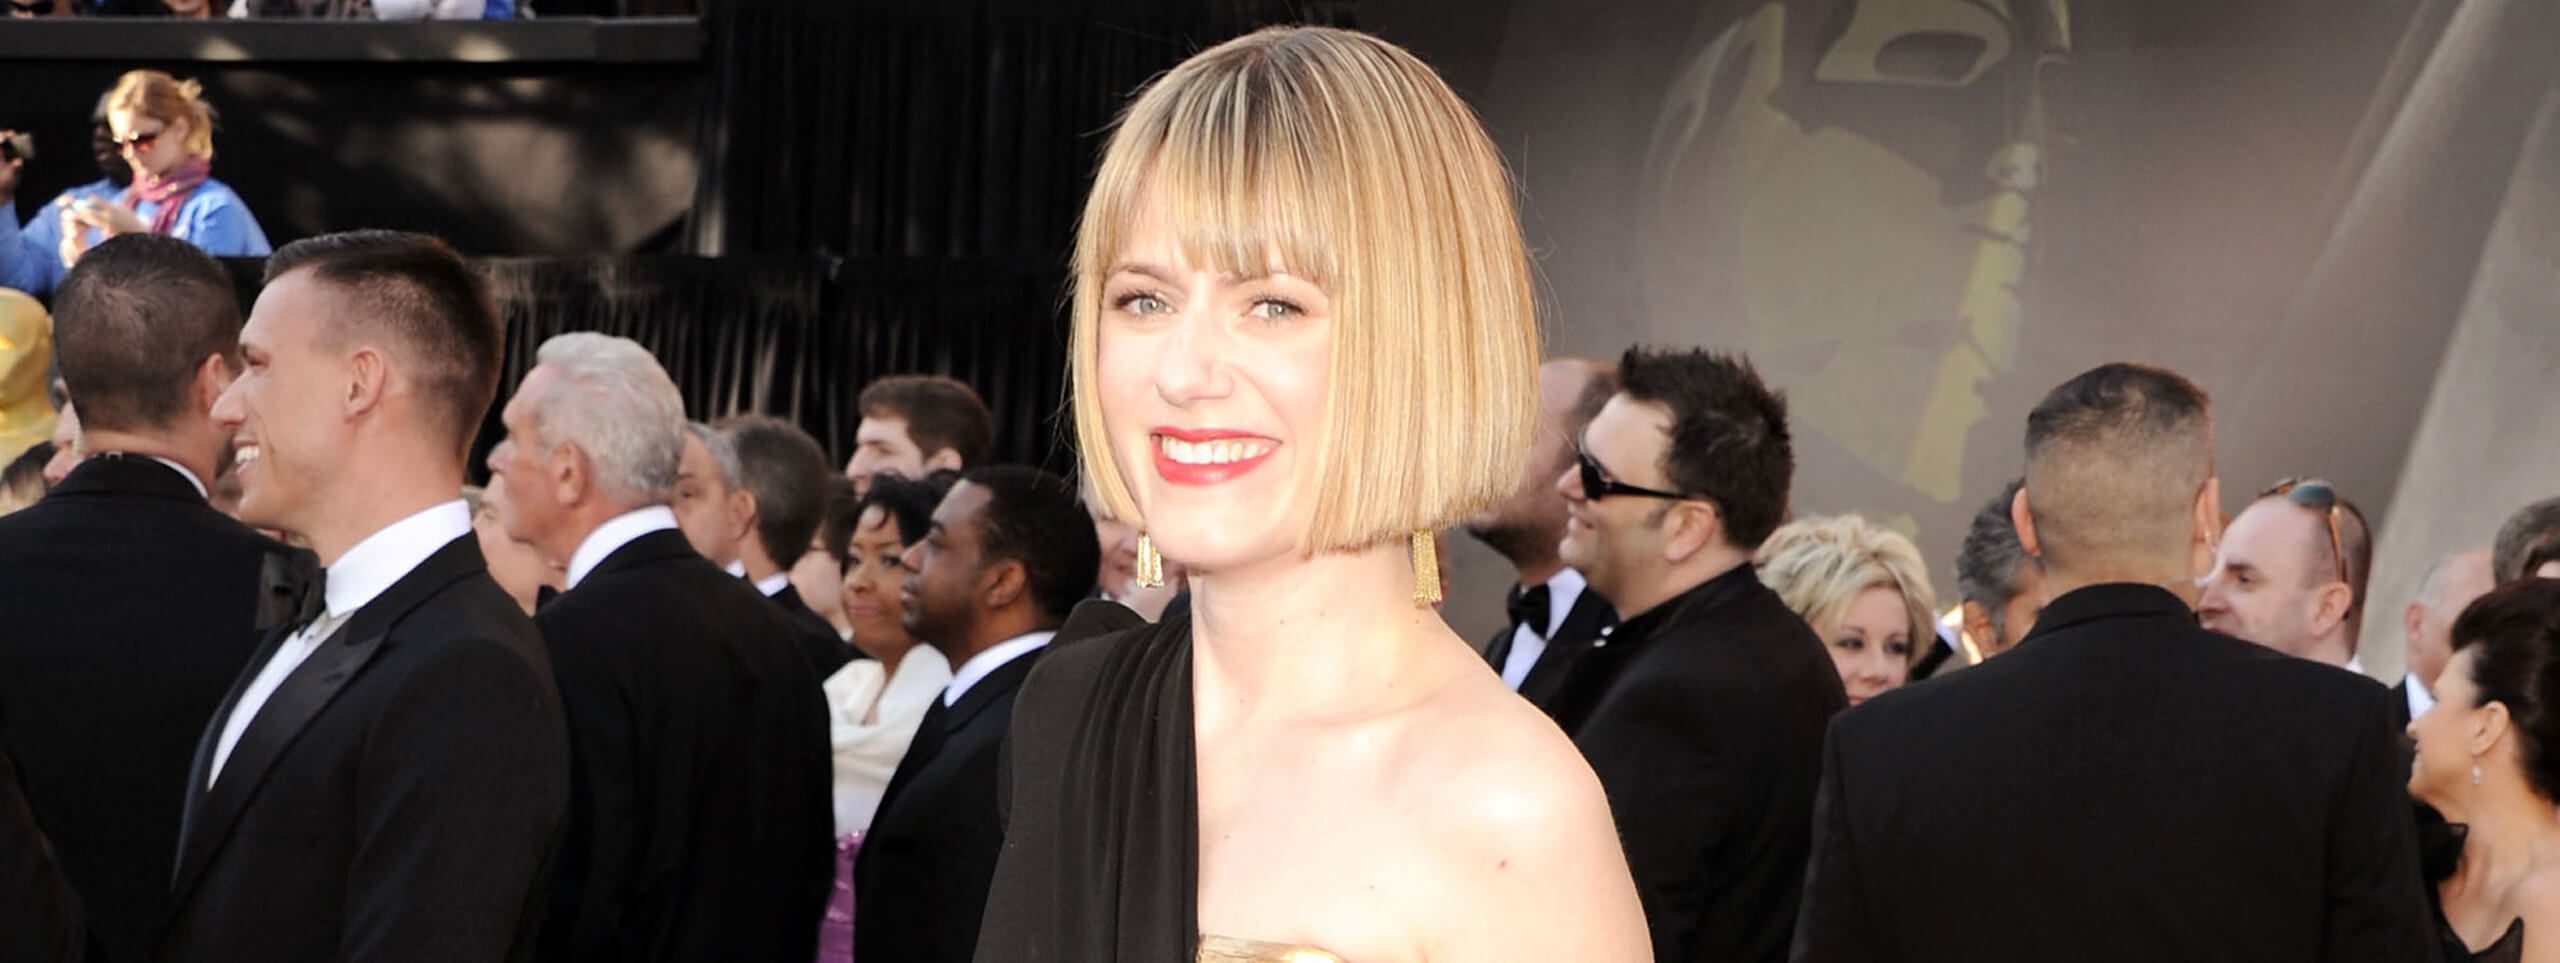 Blonde celebrity with a classic bob hairstyle